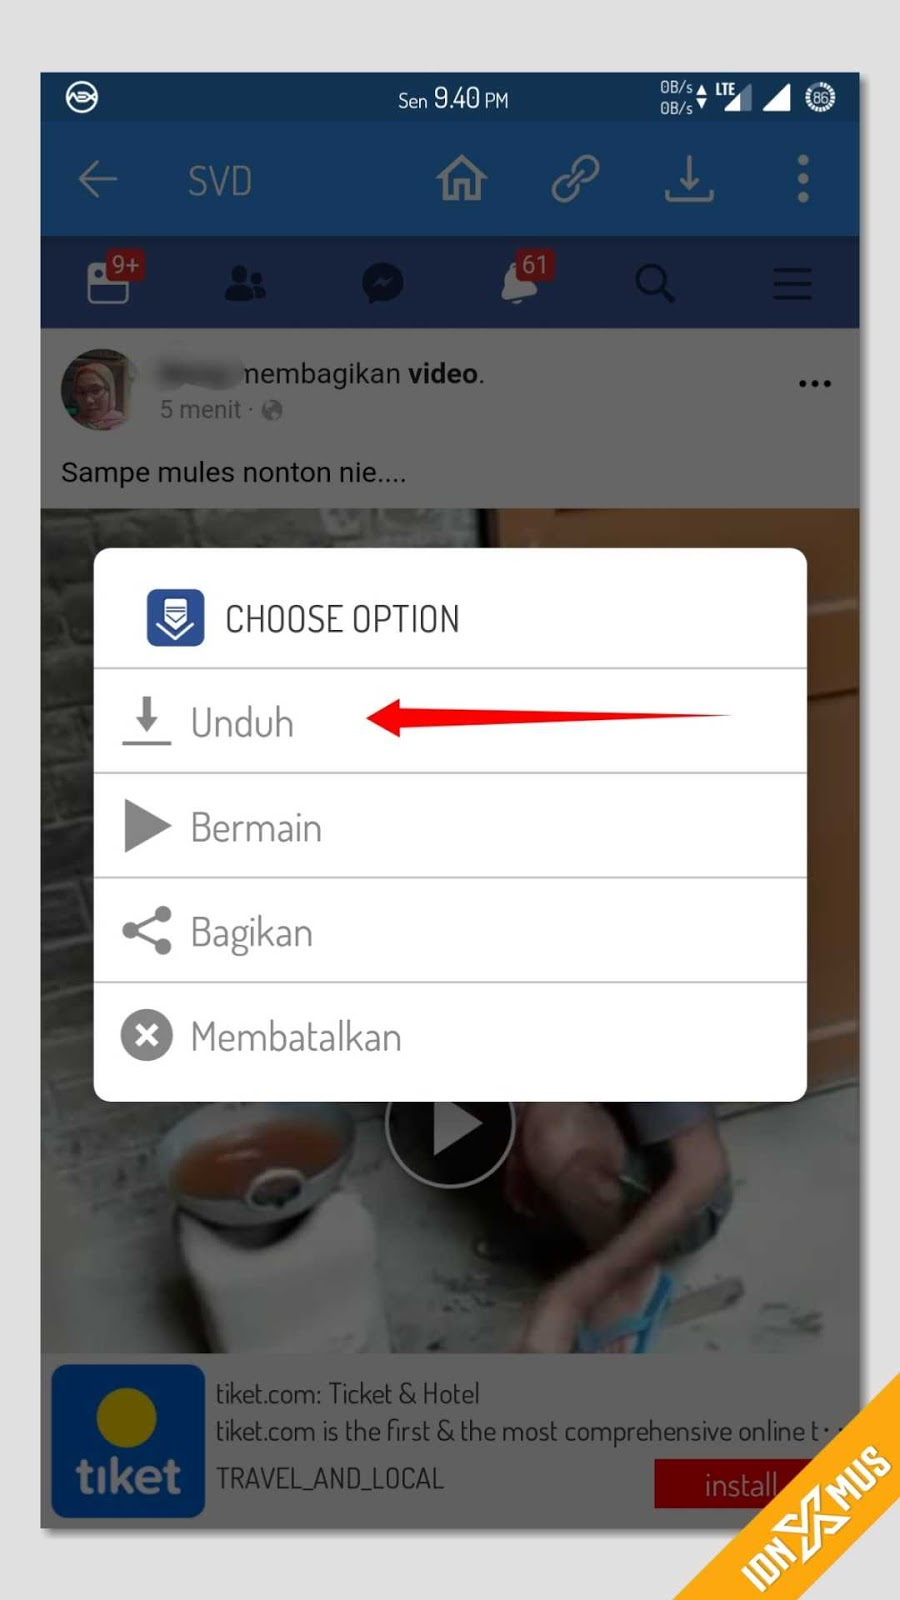 Download Video Menggunakan SVD